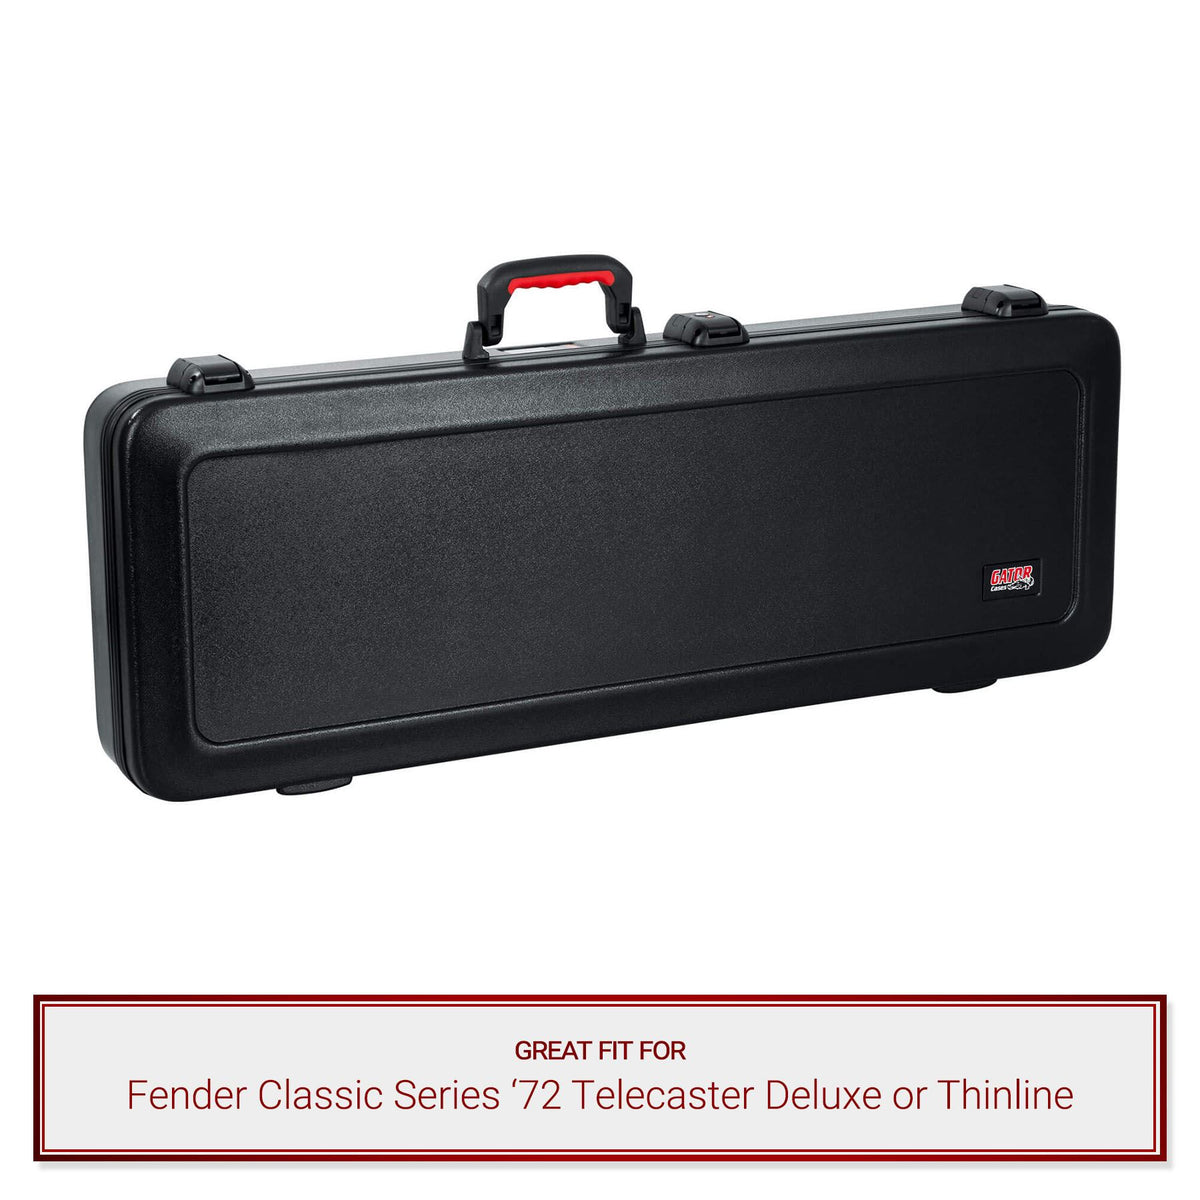 Gator TSA Guitar Case fits Fender Classic Series '72 Telecaster Deluxe/Thinline